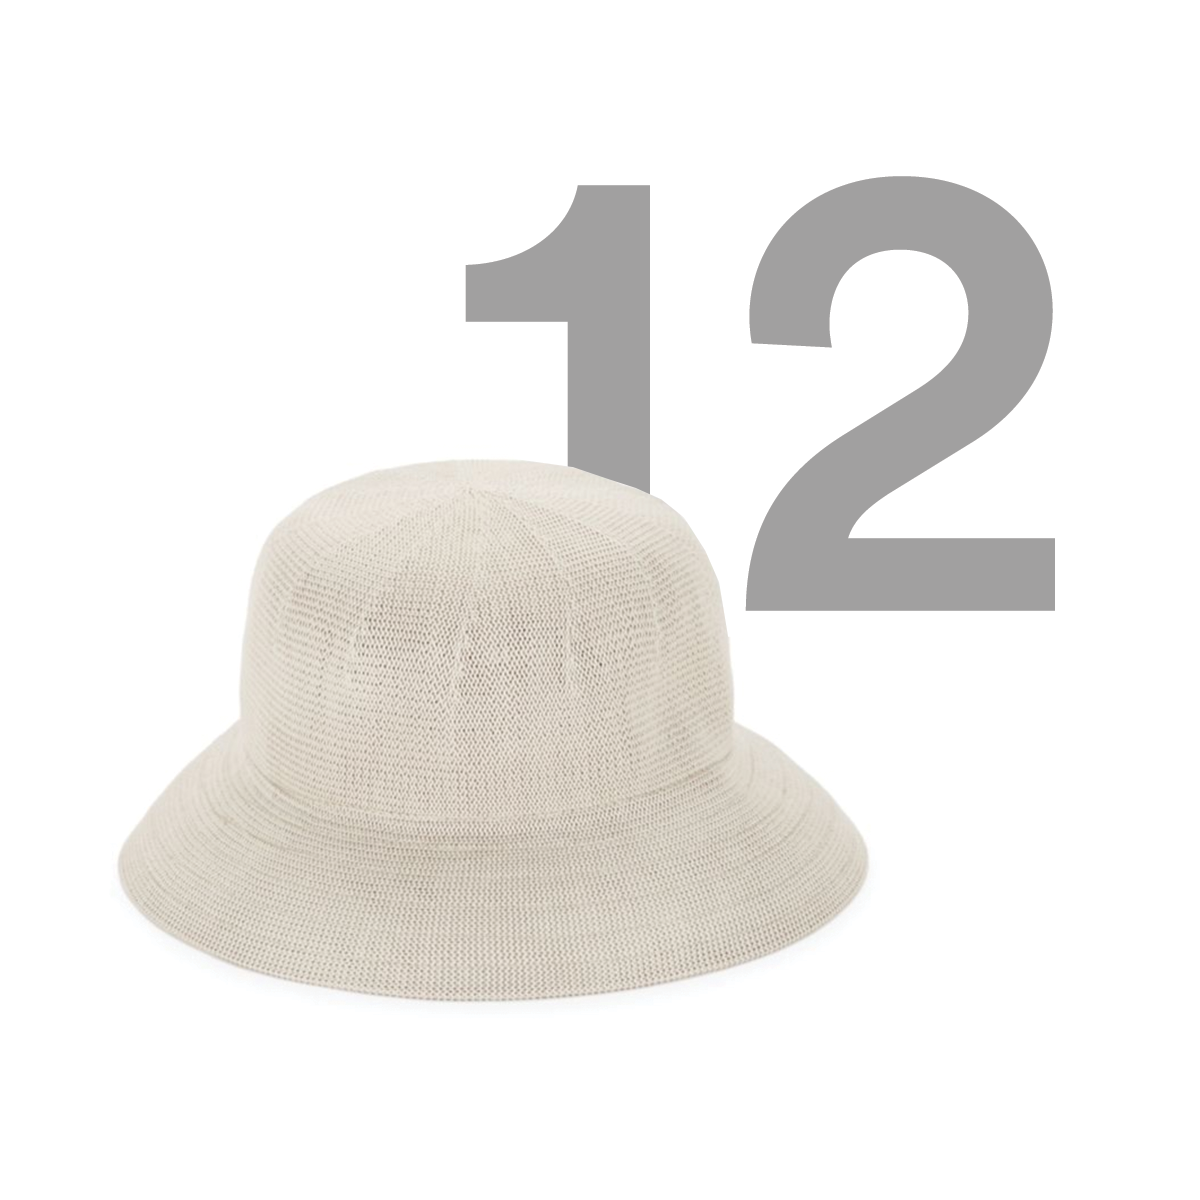 PARKHURST Bermuda Sun Hat, available at Lord & Taylor